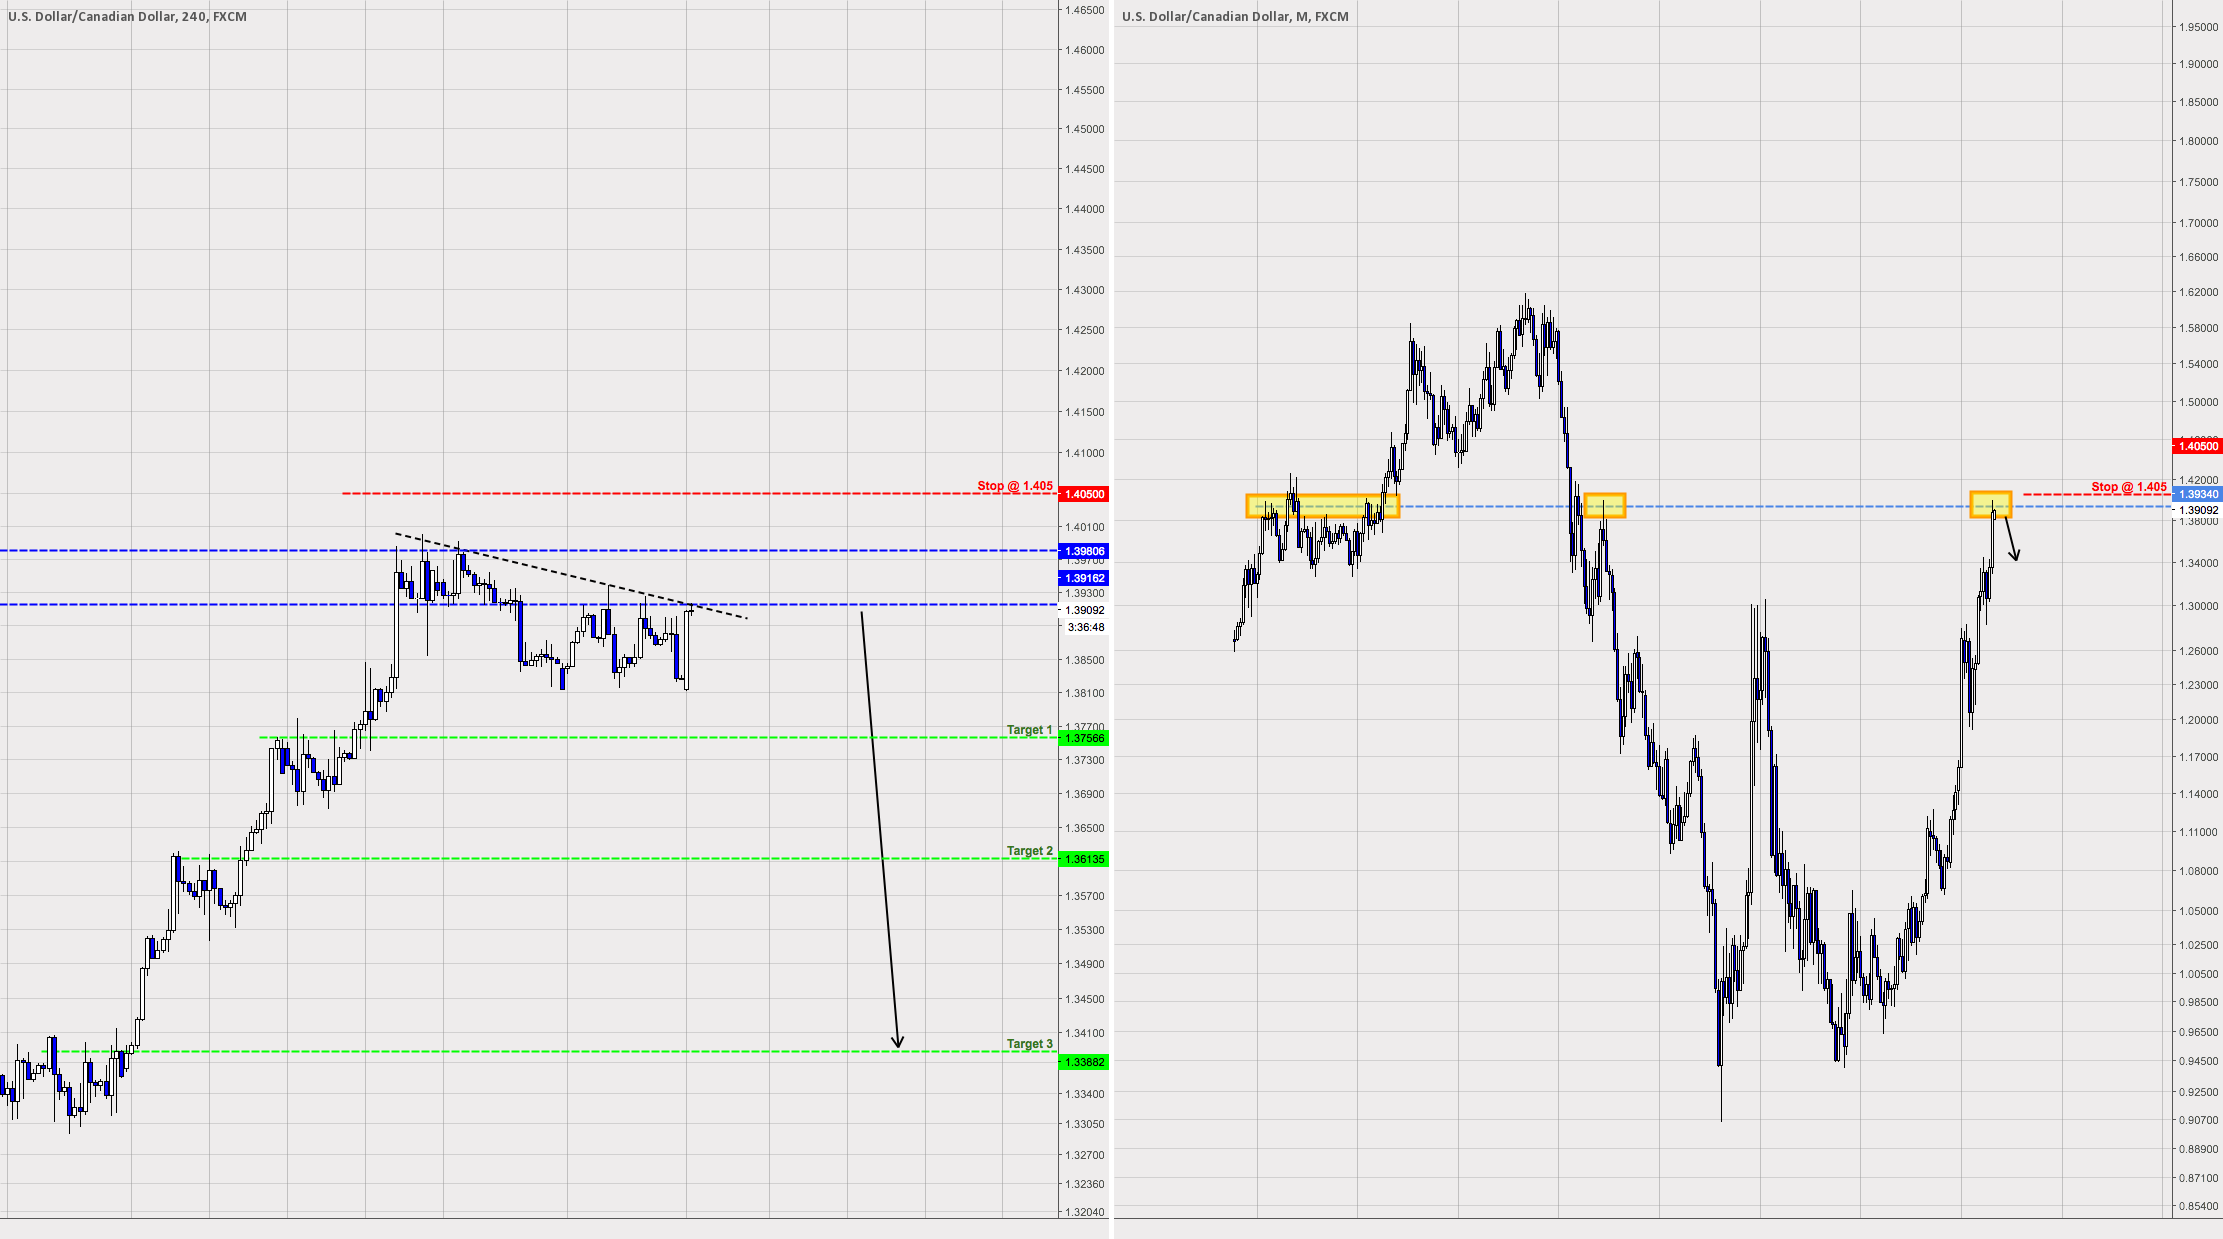 Time to go long Canadian Dollars/Short USDCAD